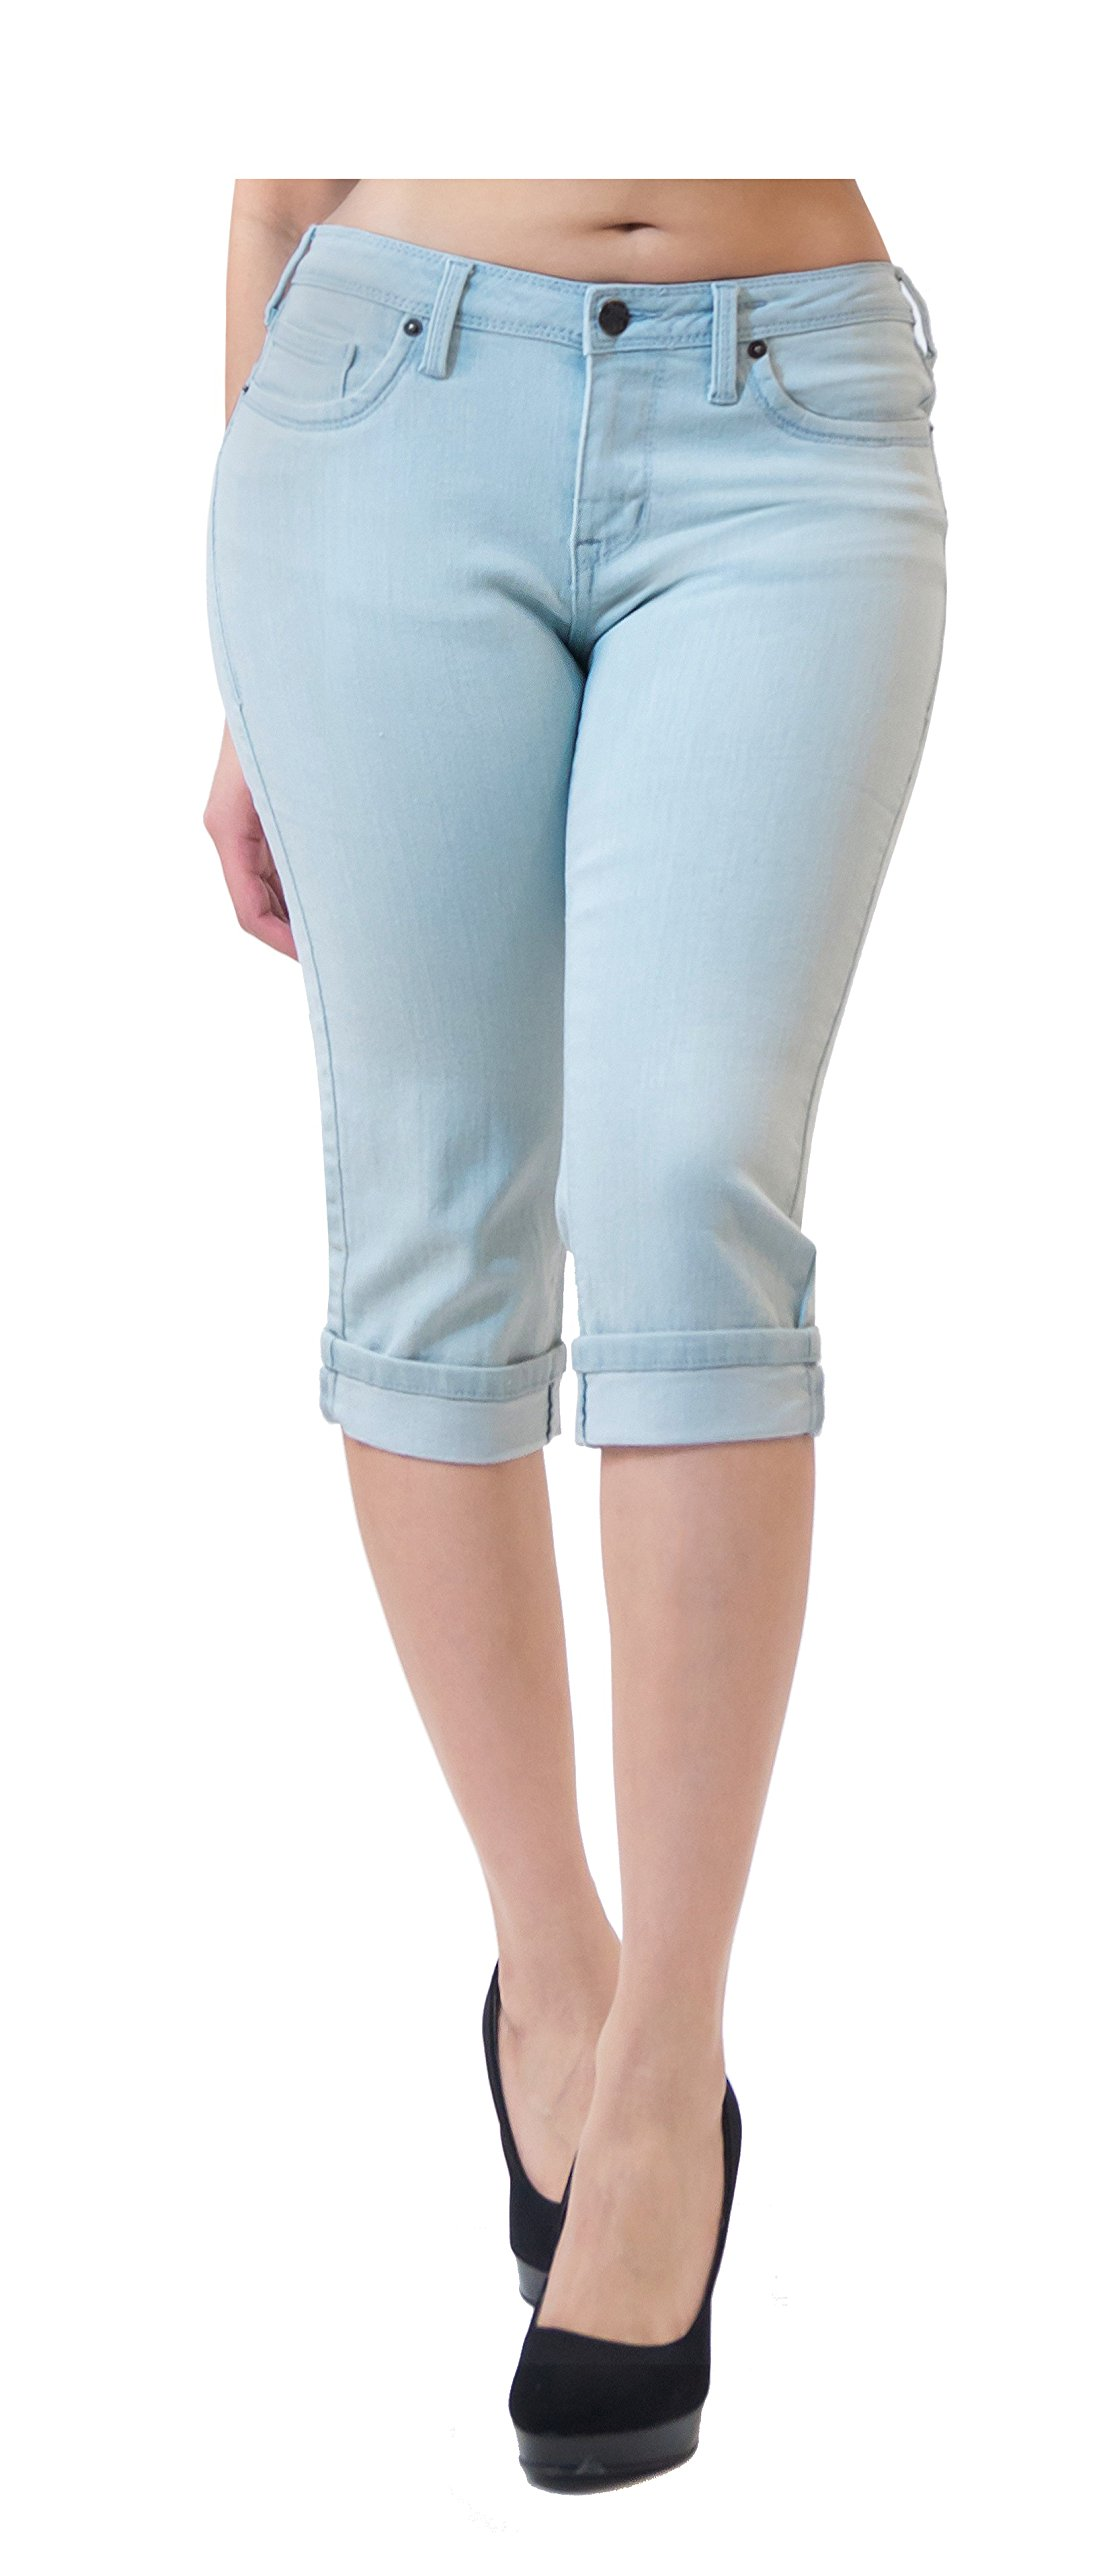 HyBrid & Company Women's Perfectly Shaping Stretchy Denim Capri-Q22883X-LightWash-18 by HyBrid & Company (Image #2)